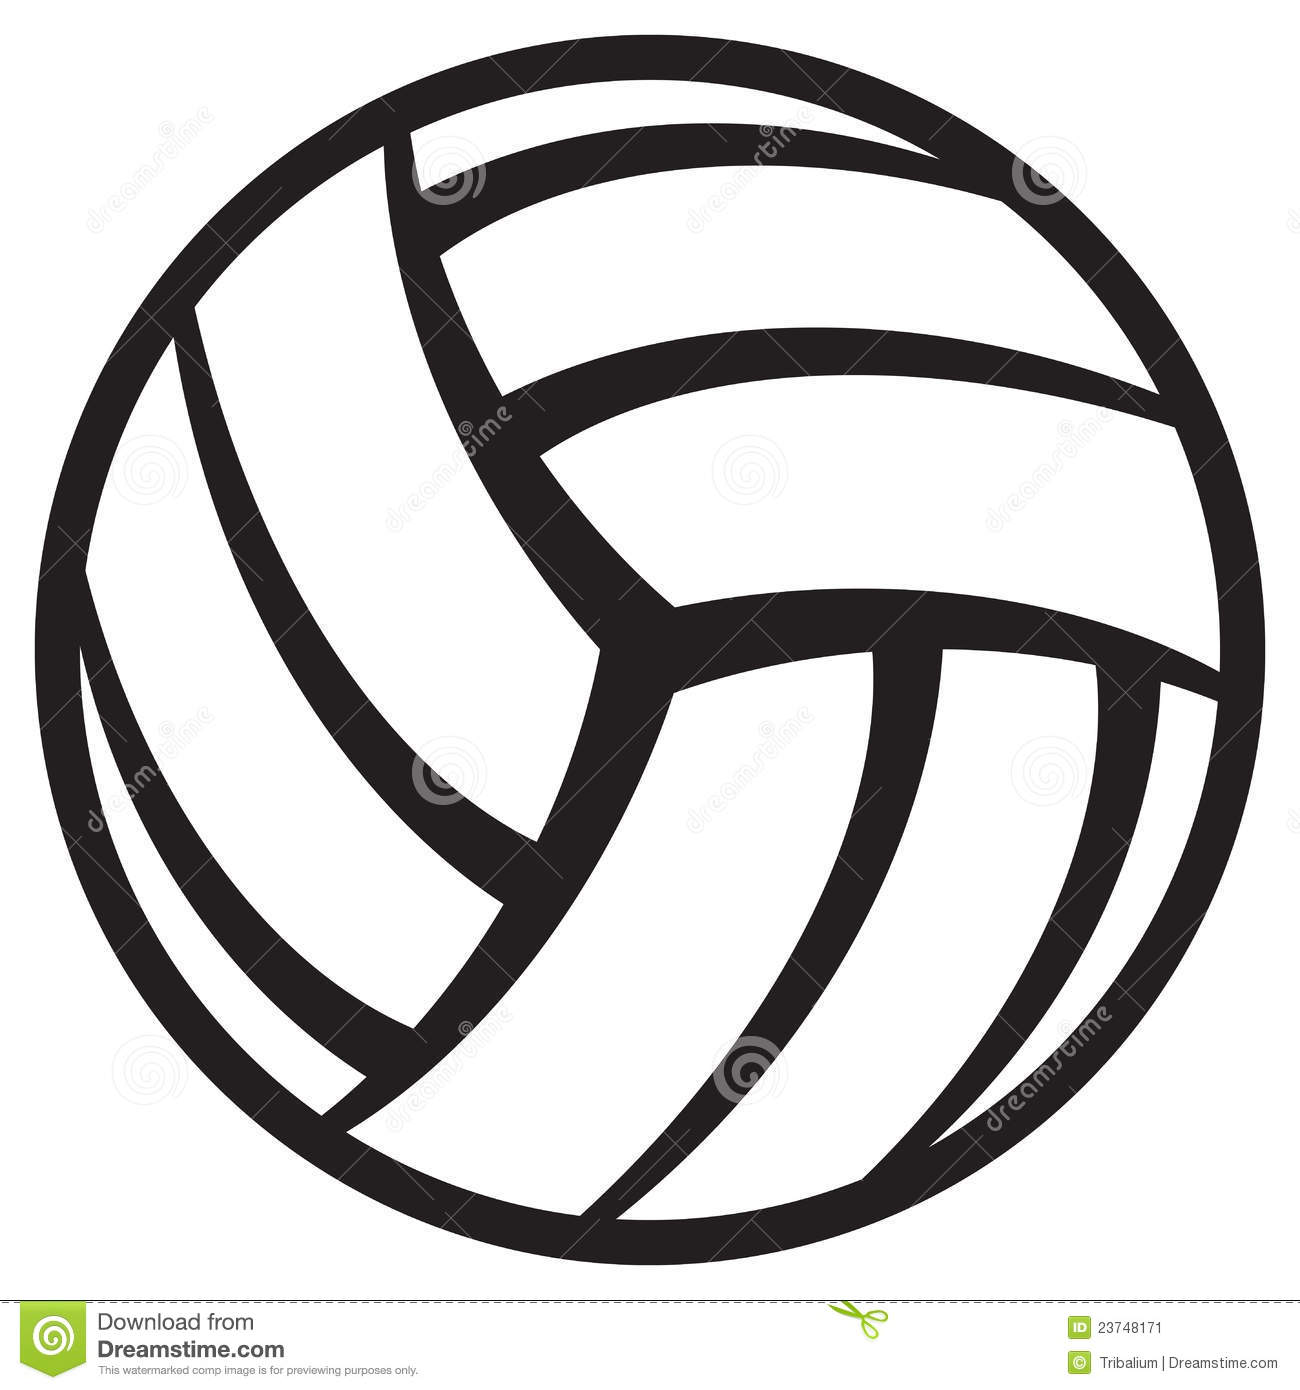 Volleyball clipart clipart cliparts for -Volleyball clipart clipart cliparts for you-17